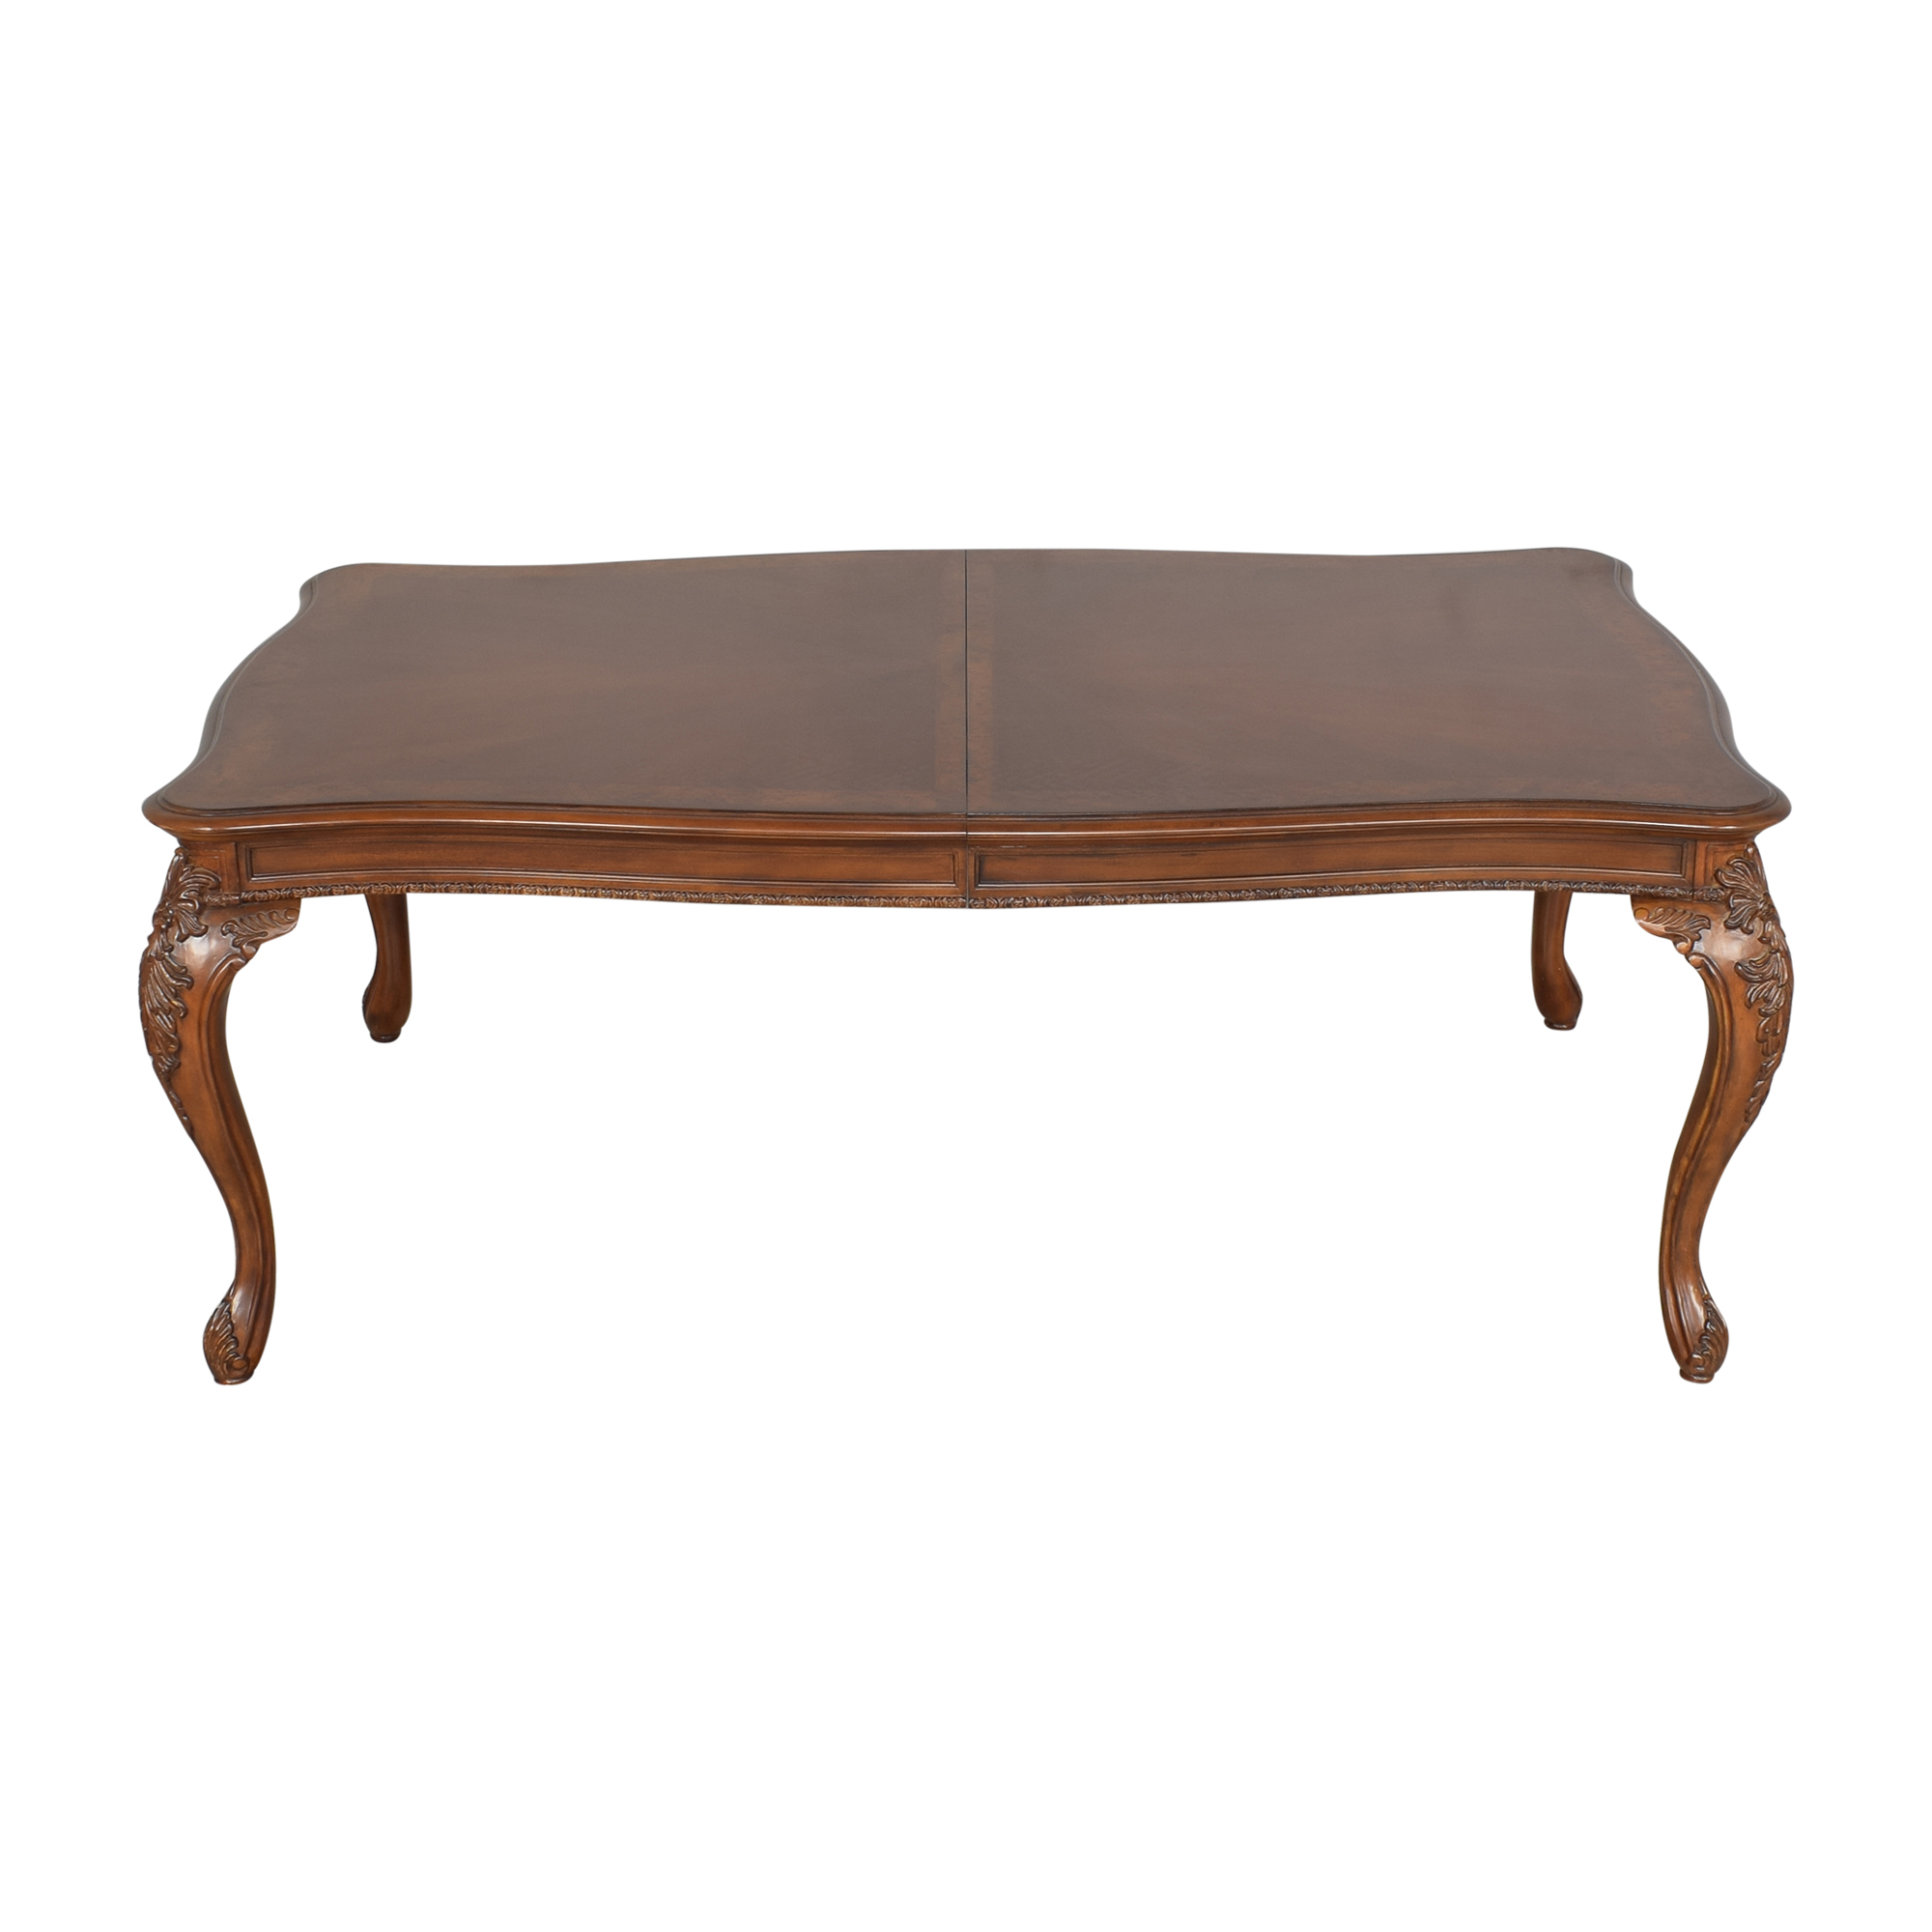 American Drew Jessican McClintock Home Romance Collection for American Drew Dining Table nj